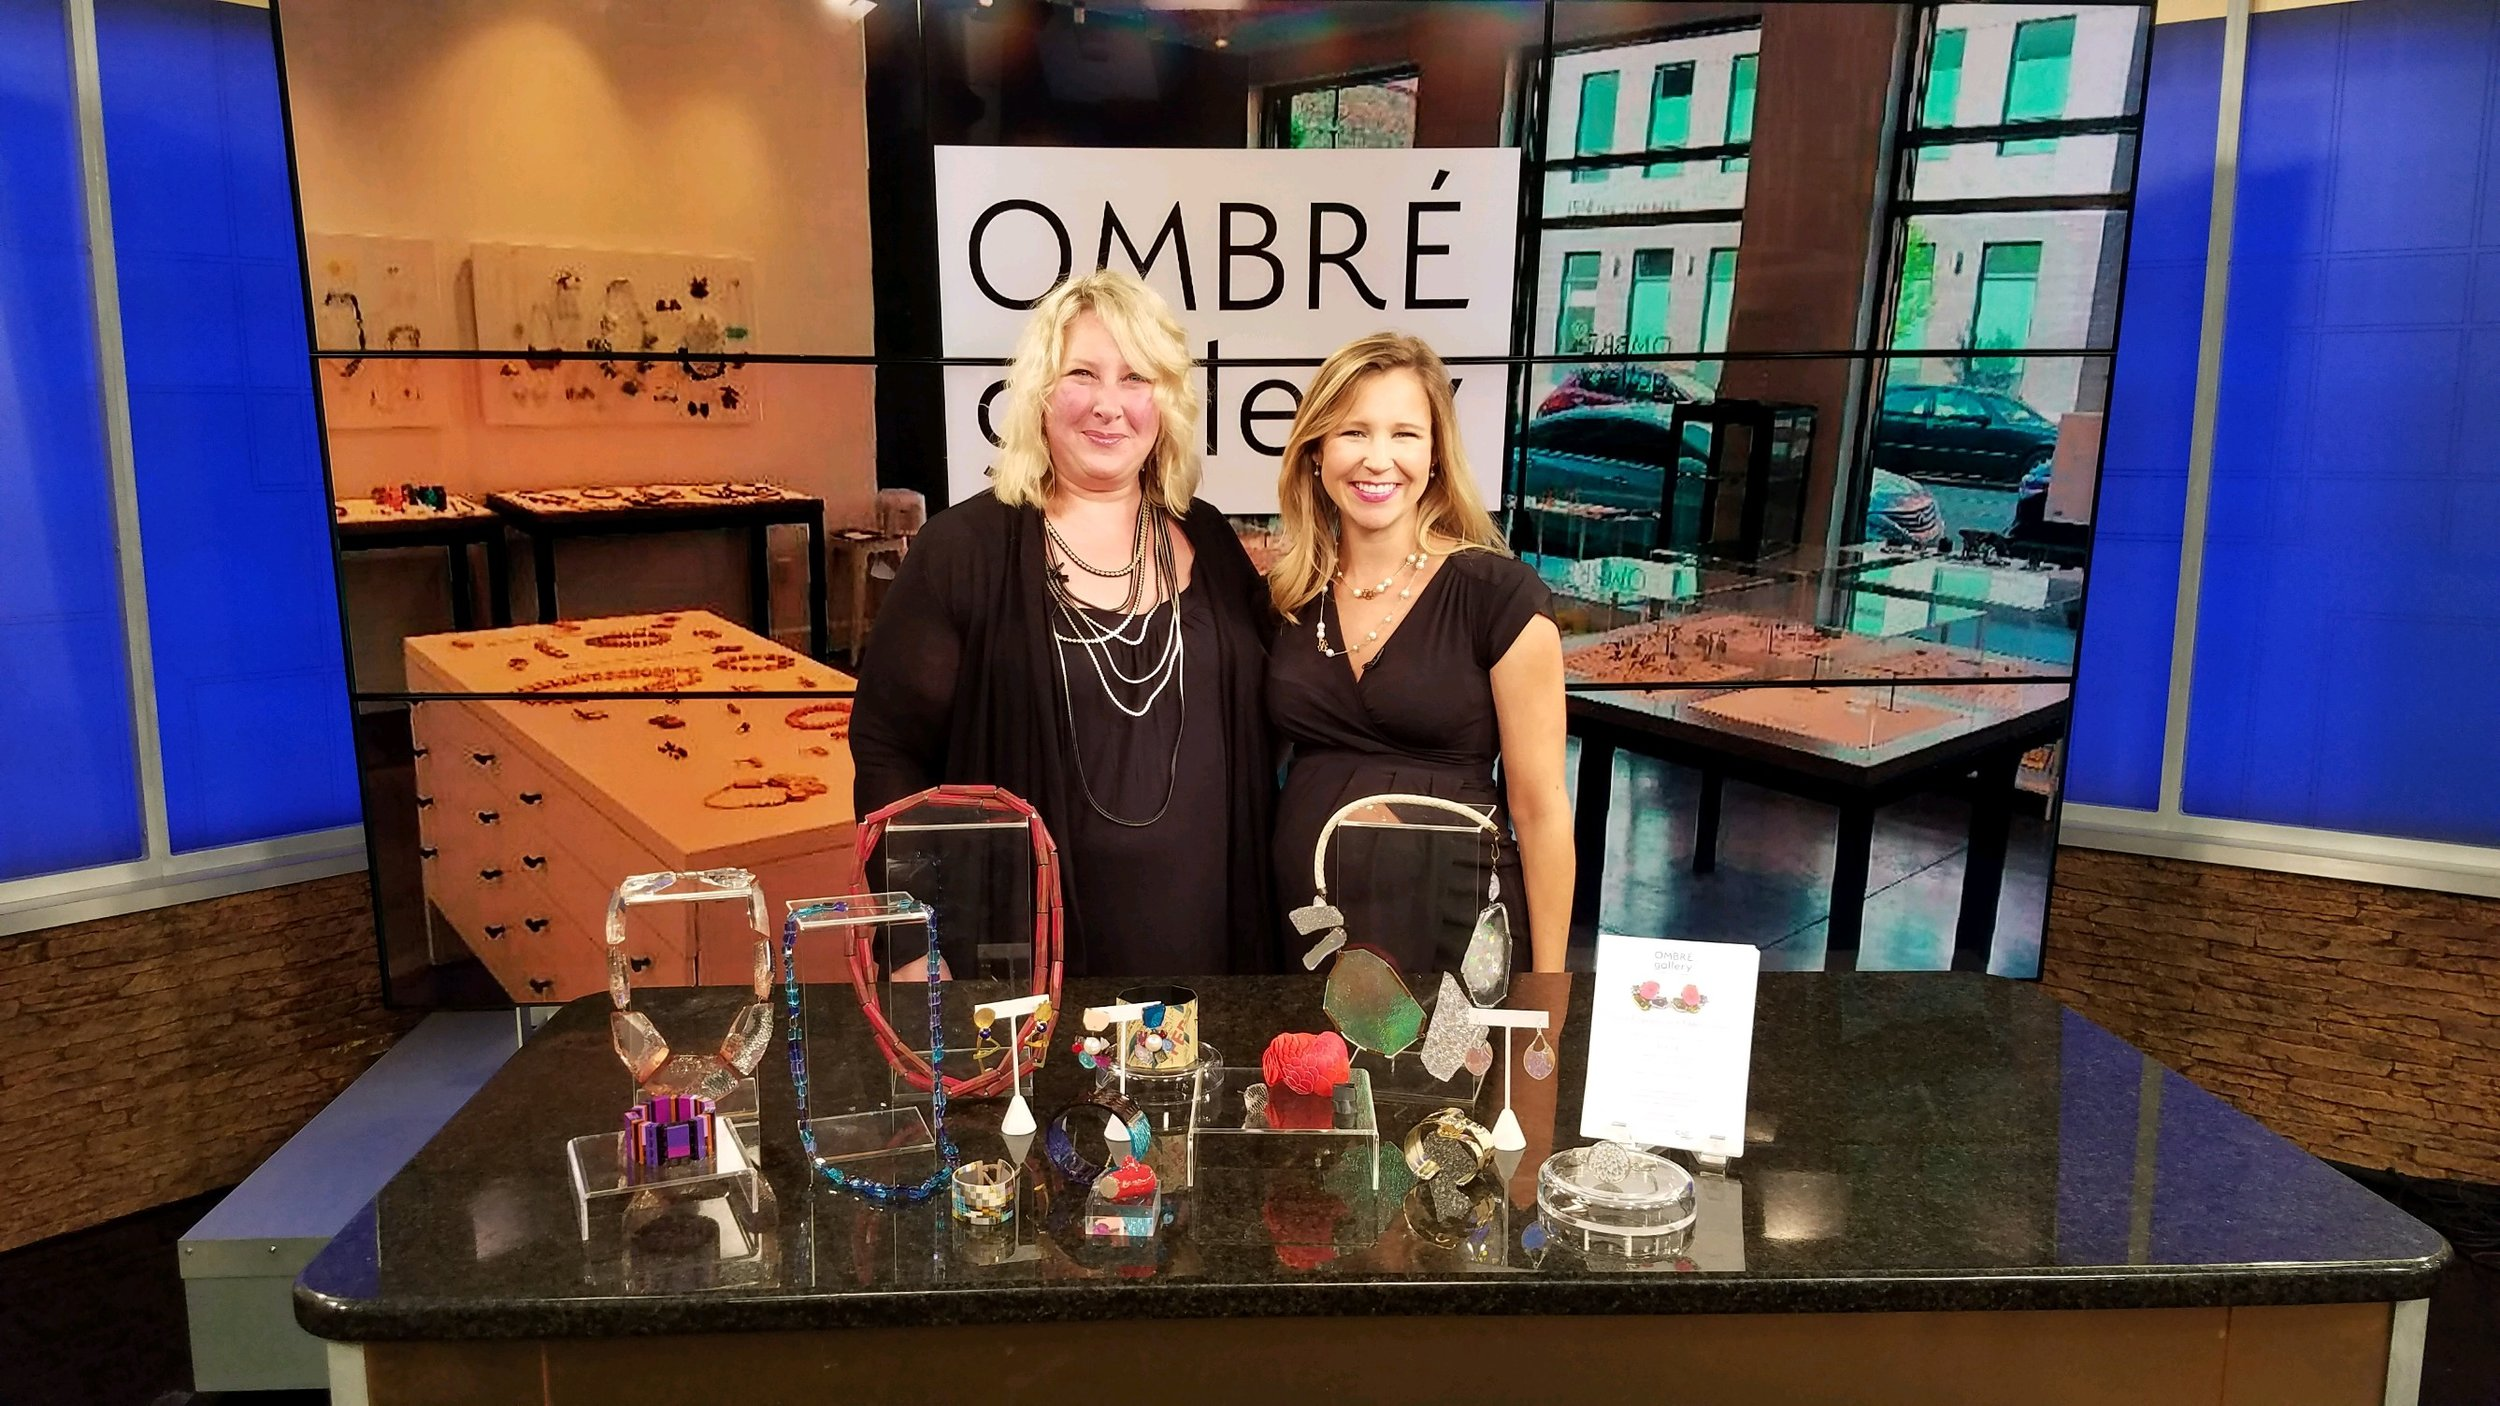 Ombré Gallery on Fox19, September 12, 2018